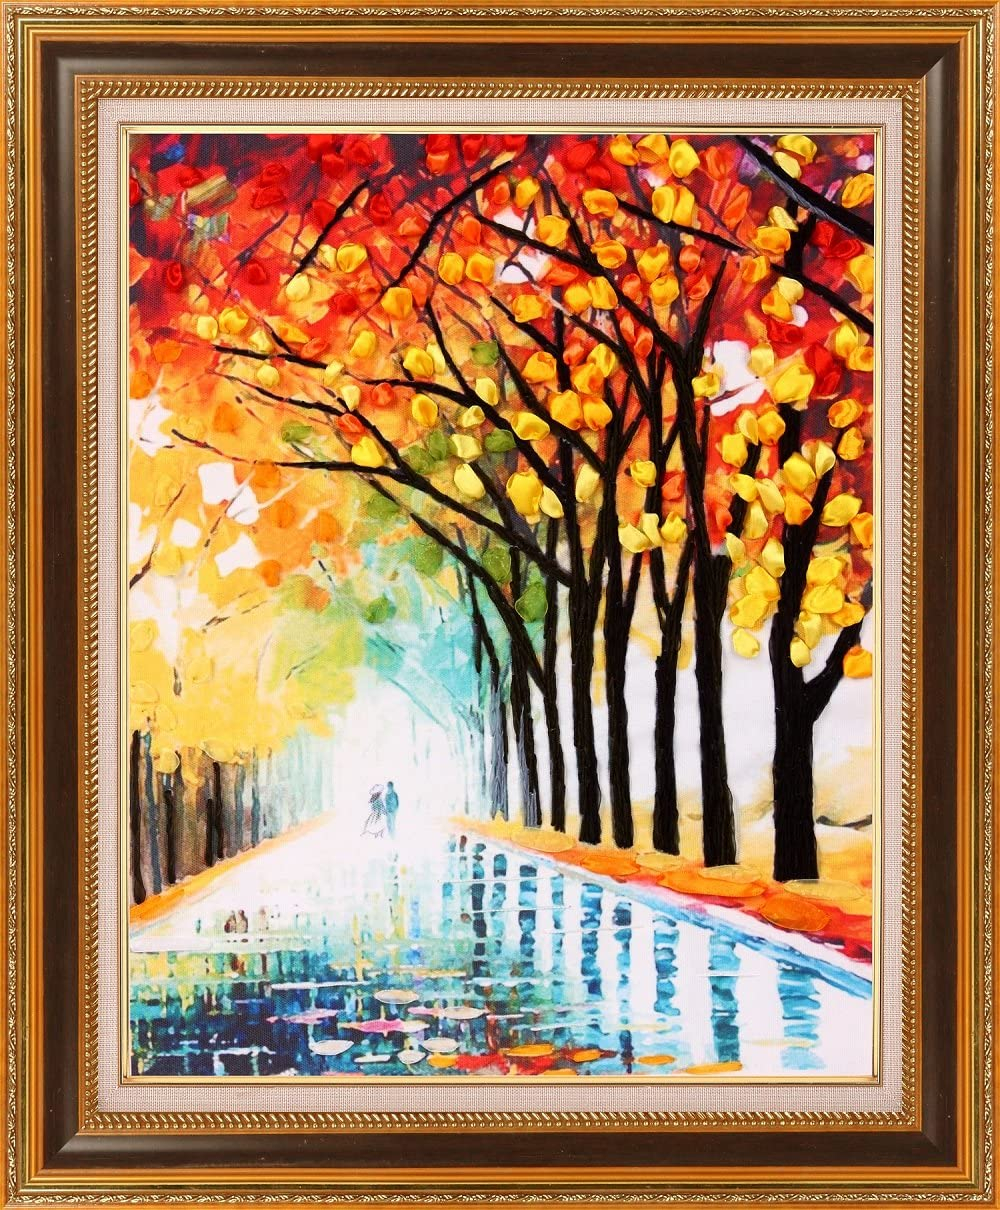 Ribbon embroidery Kit,Fanryn 3D Silk ribbon embroidery Rain and autumn pattern design Cross Stitch Kit Embroidery for beginner DIY Handwork Home Decoration Wall Decor 45x55cm No frame